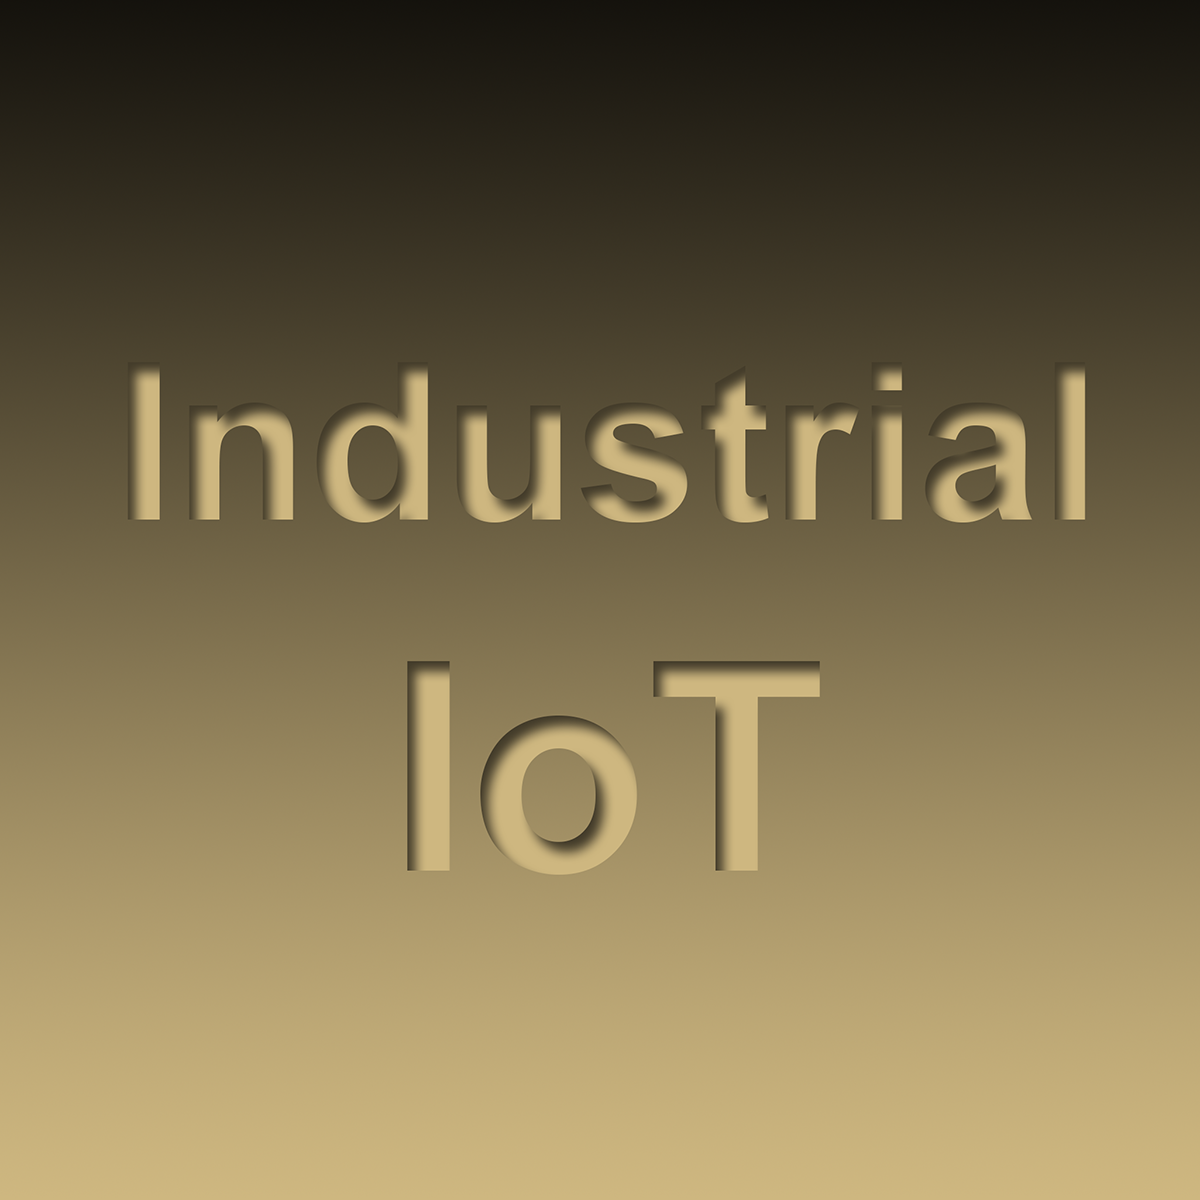 Free Online Course: Industrial IoT Markets and Security from